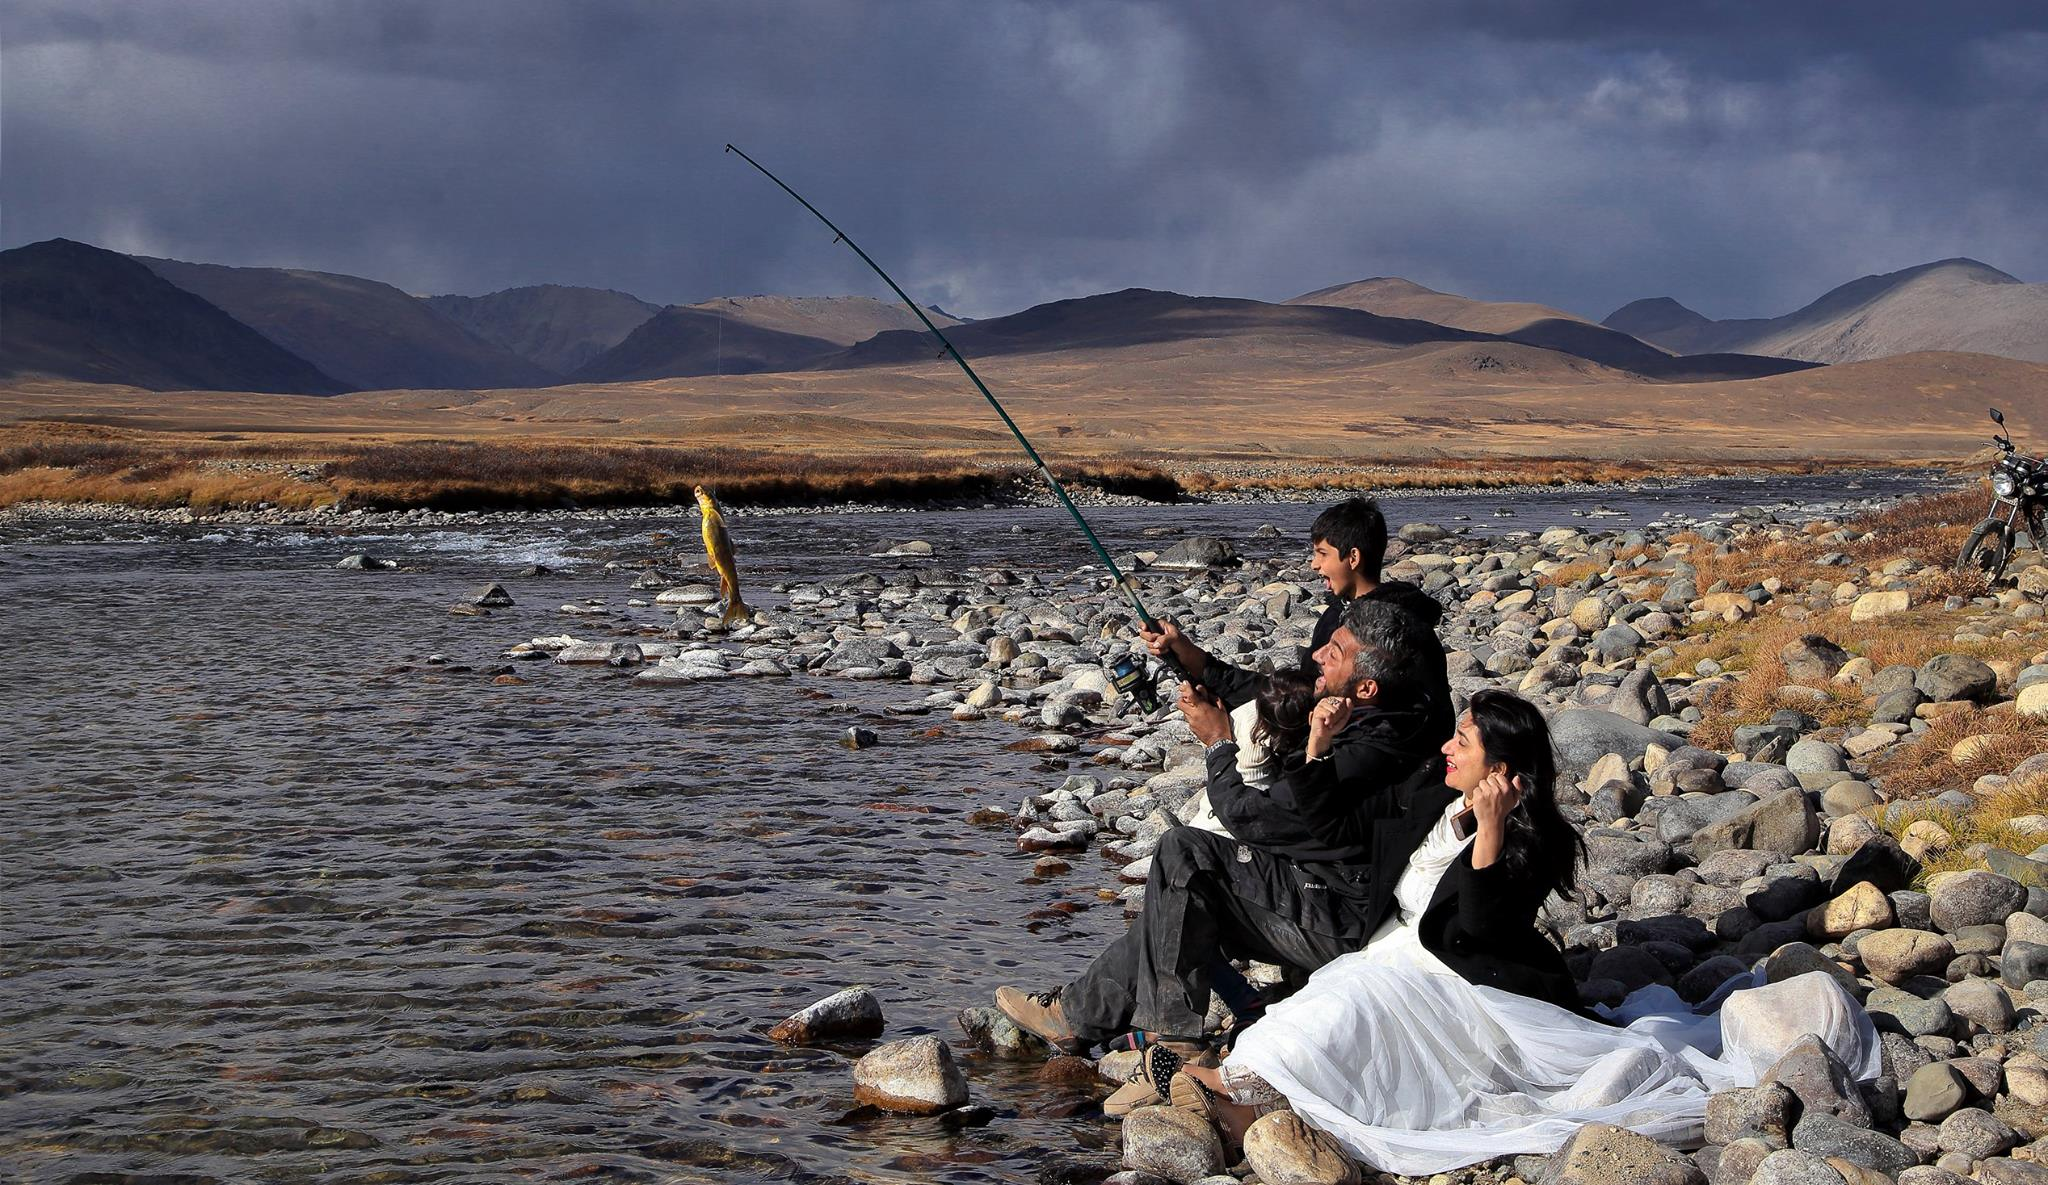 Fishing at Deosai